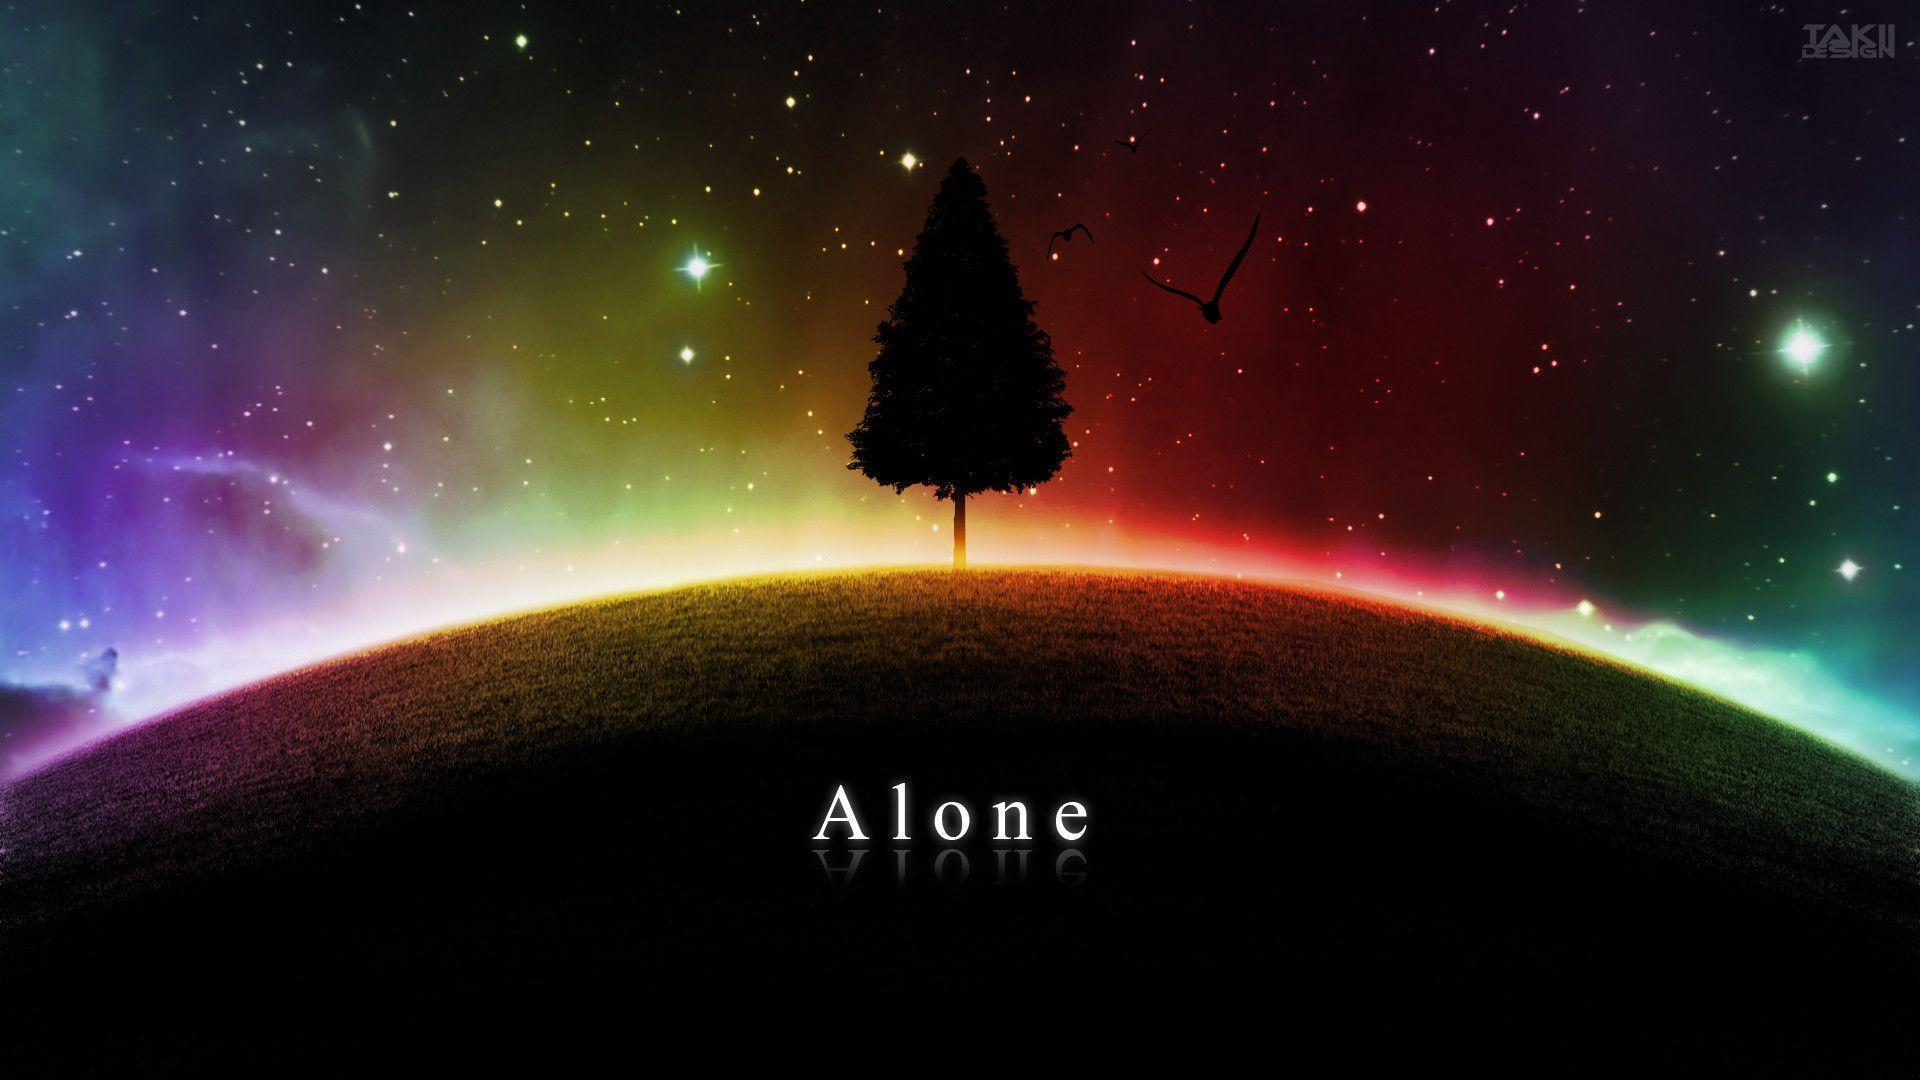 Alone Wallpaper